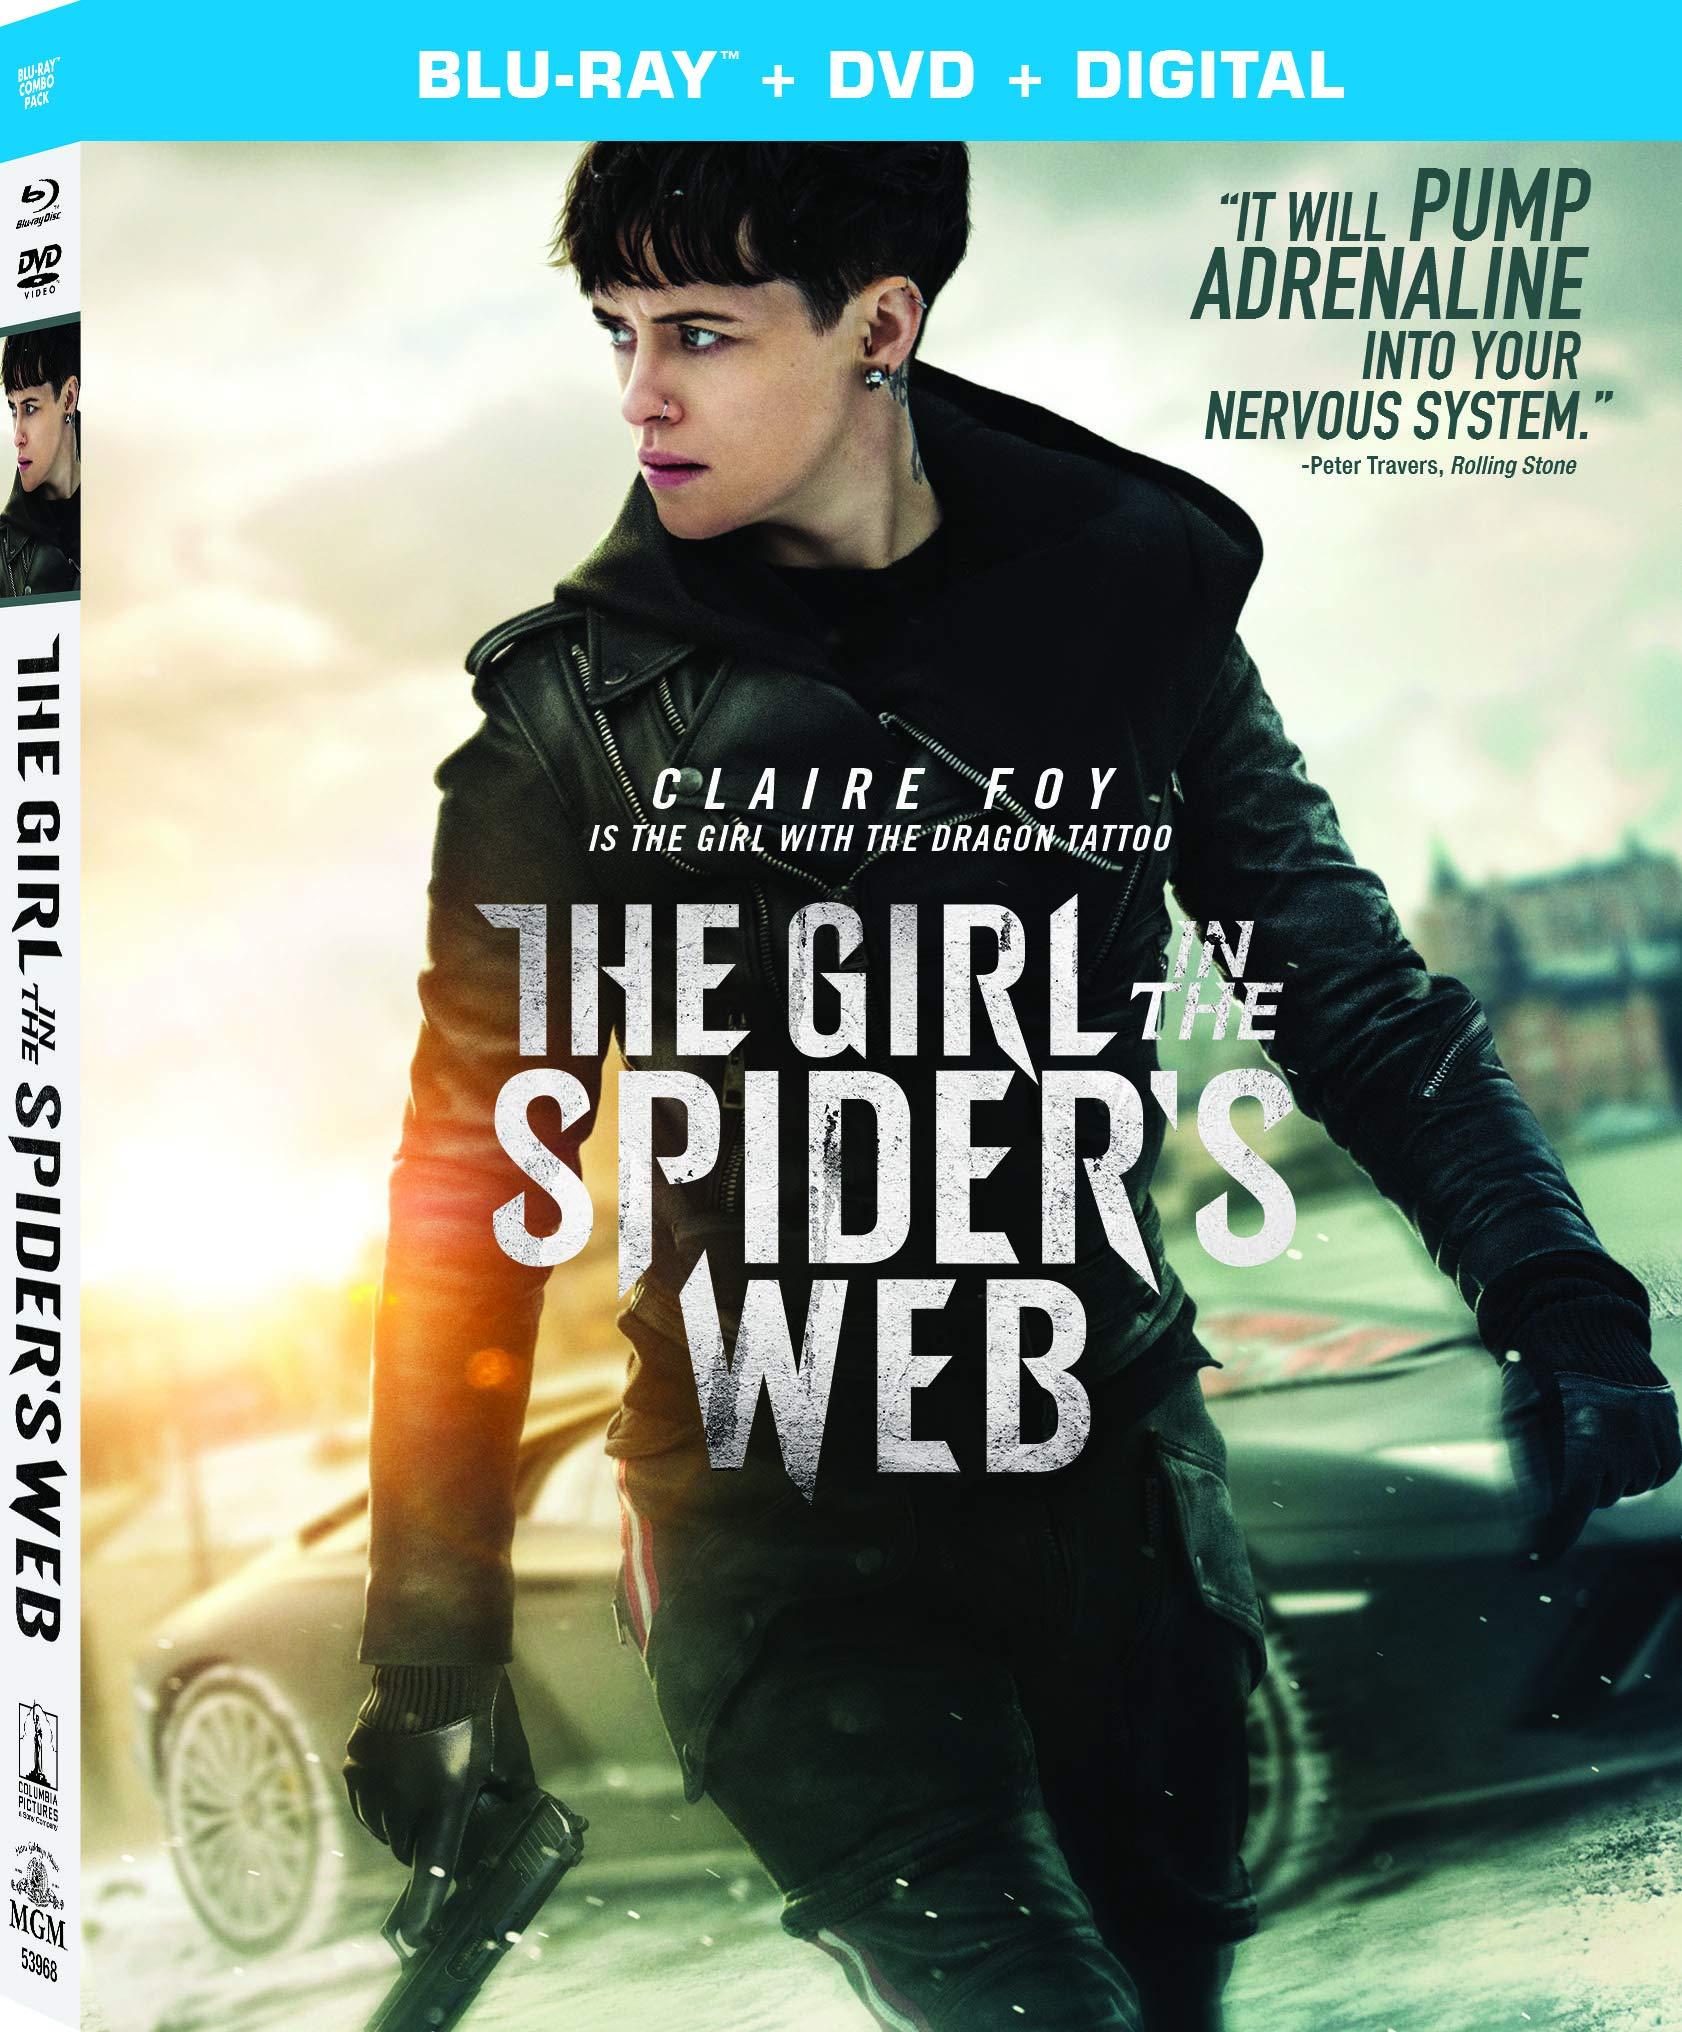 Blu-ray : The Girl In The Spider's Web: A New Dragon Tattoo Story (With DVD, Digital Copy)